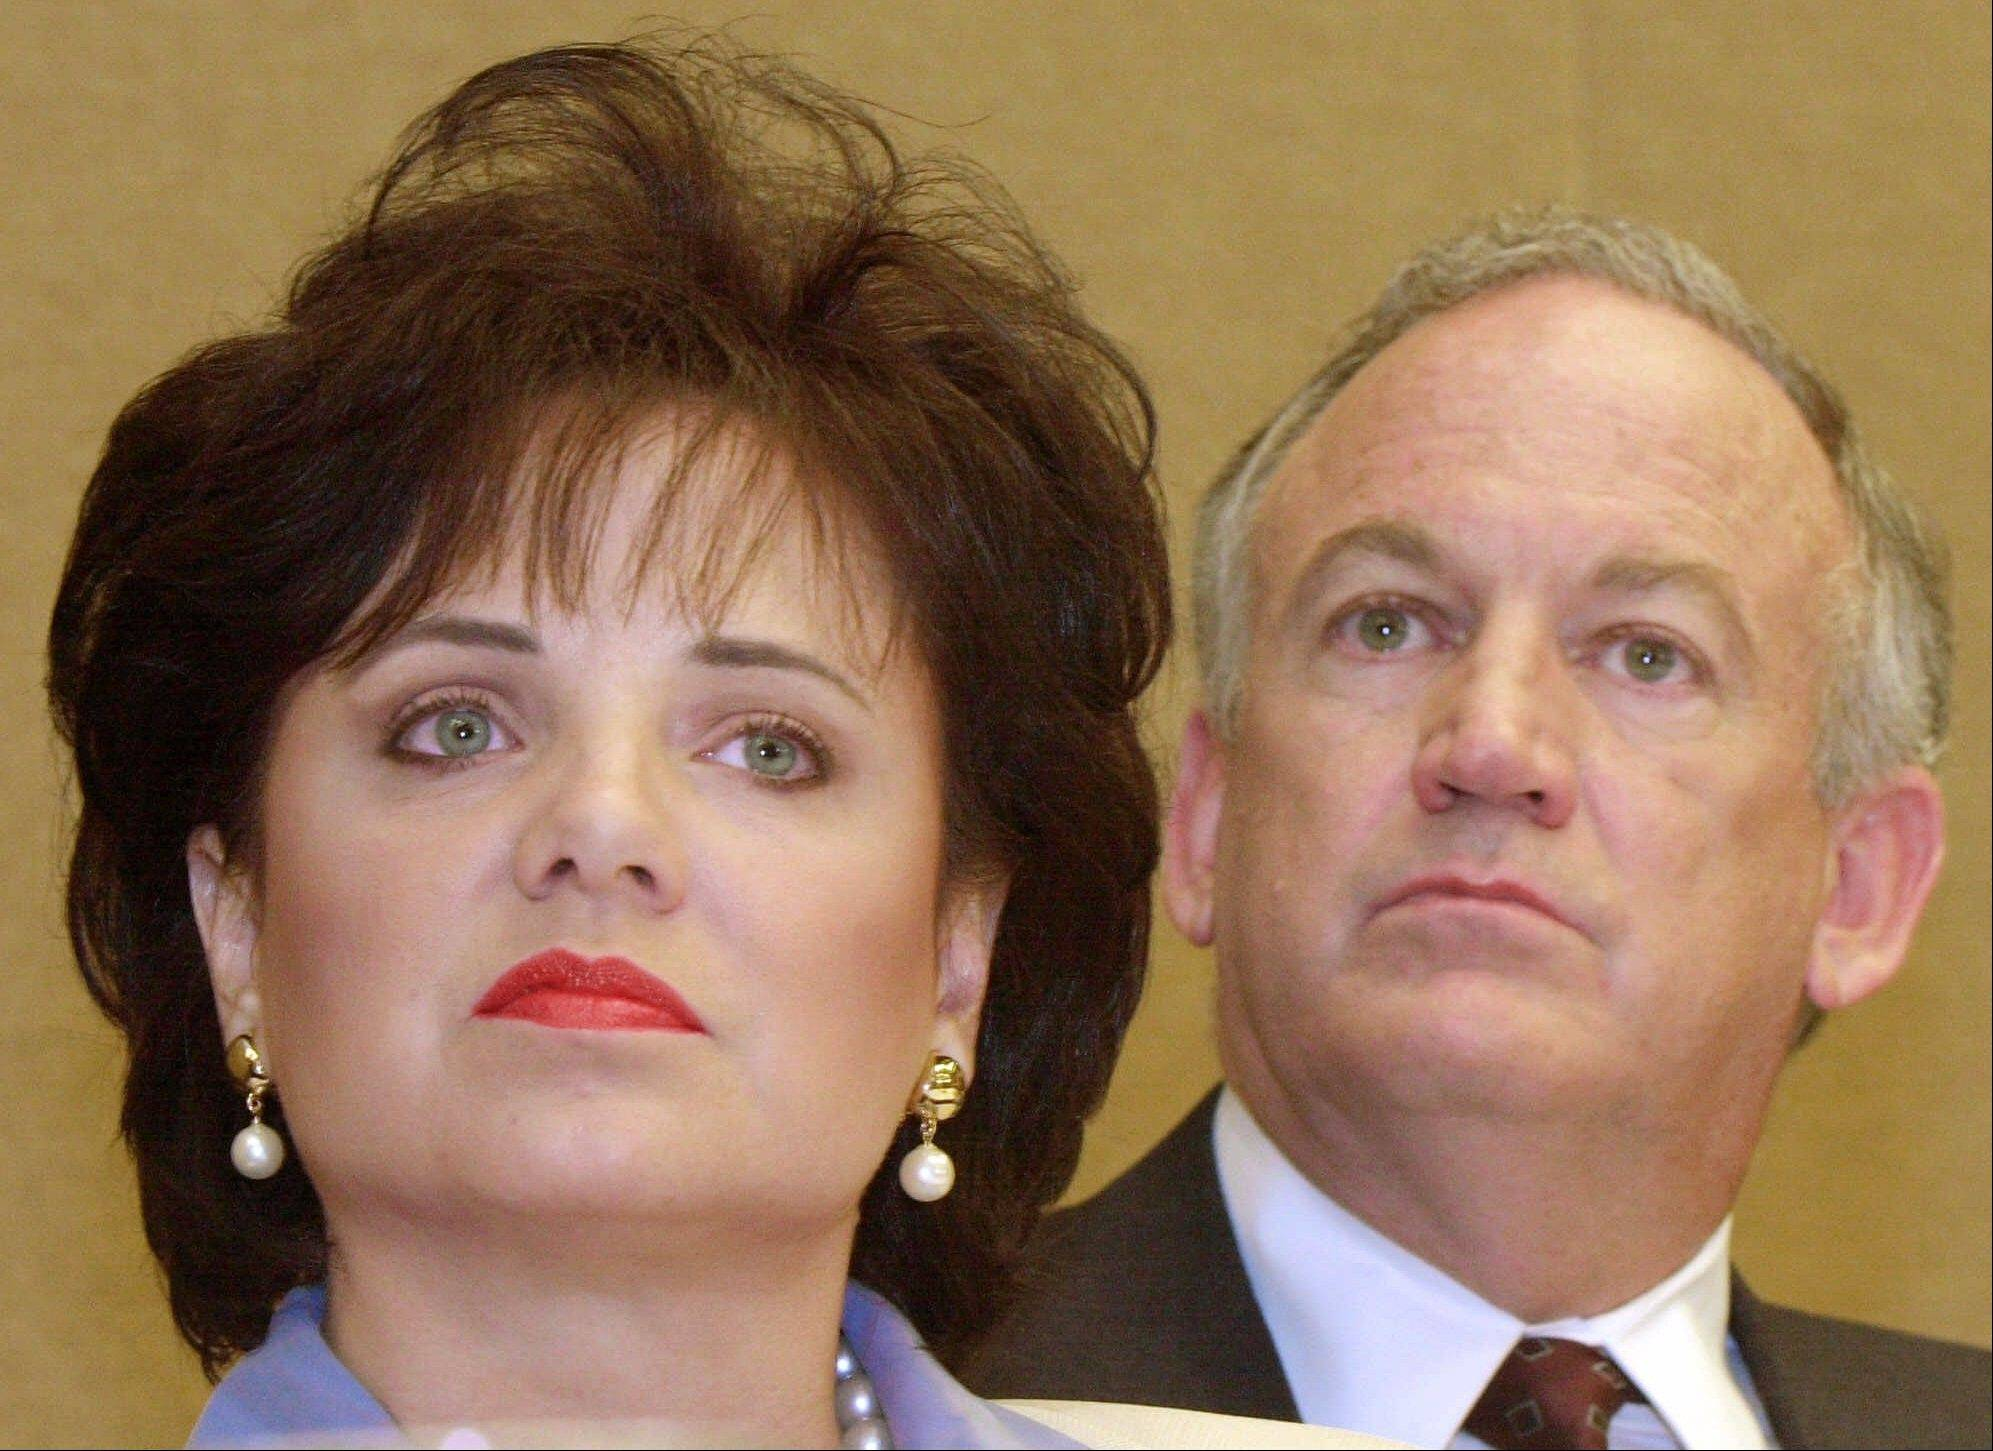 In this May 24, 2000 file photo, Patsy Ramsey and her husband, John, parents of JonBenet Ramsey, at a news conference in Atlanta regarding their lie-detector examinations for the murder of their daughter.